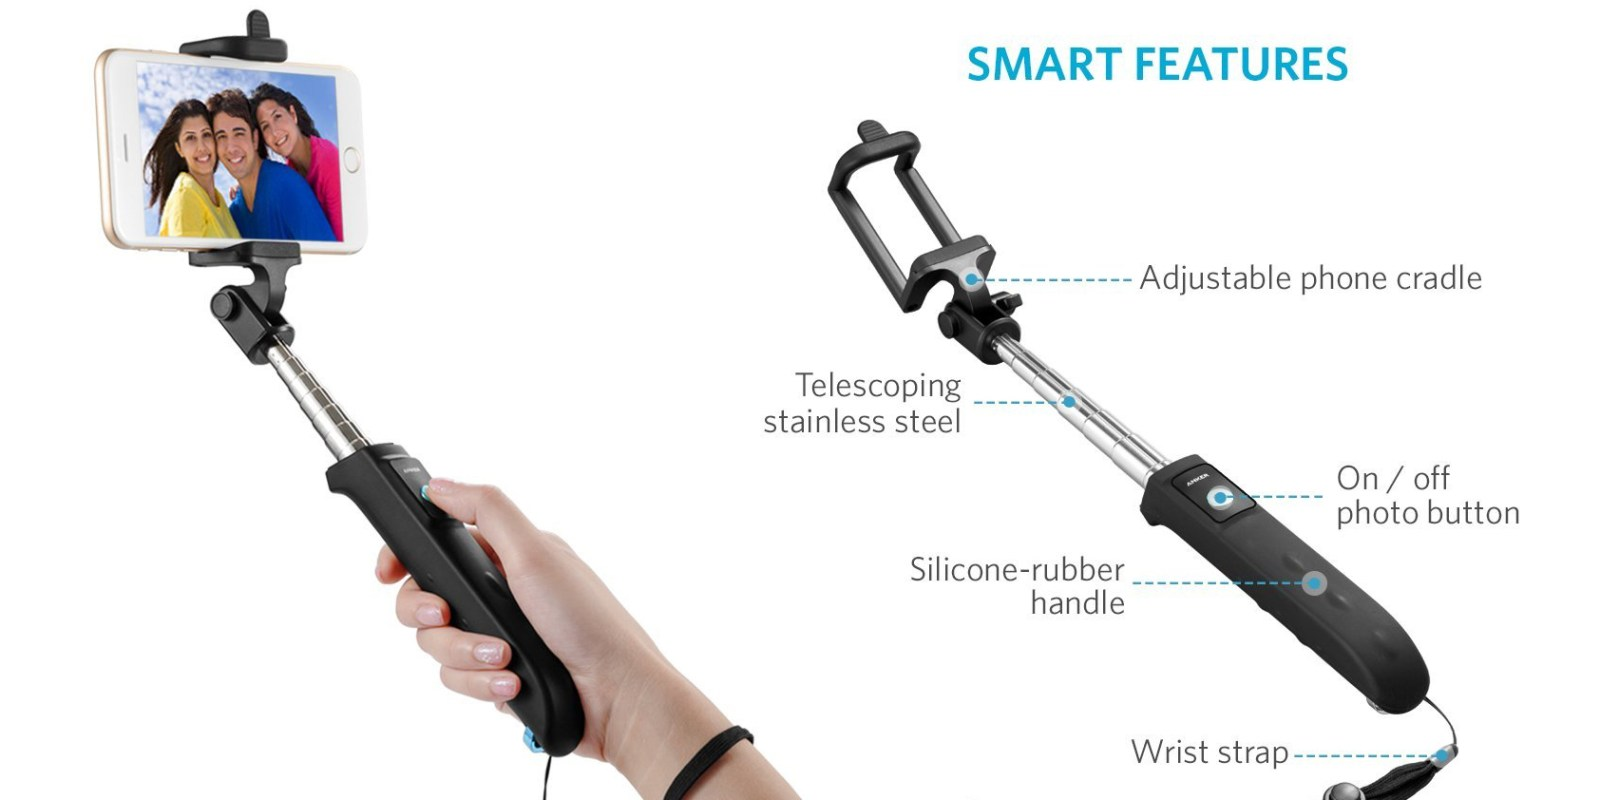 Stocking Stuffer Alert – Anker 31-inch Bluetooth Selfie Stick: $6 Prime shipped (Reg. $17)